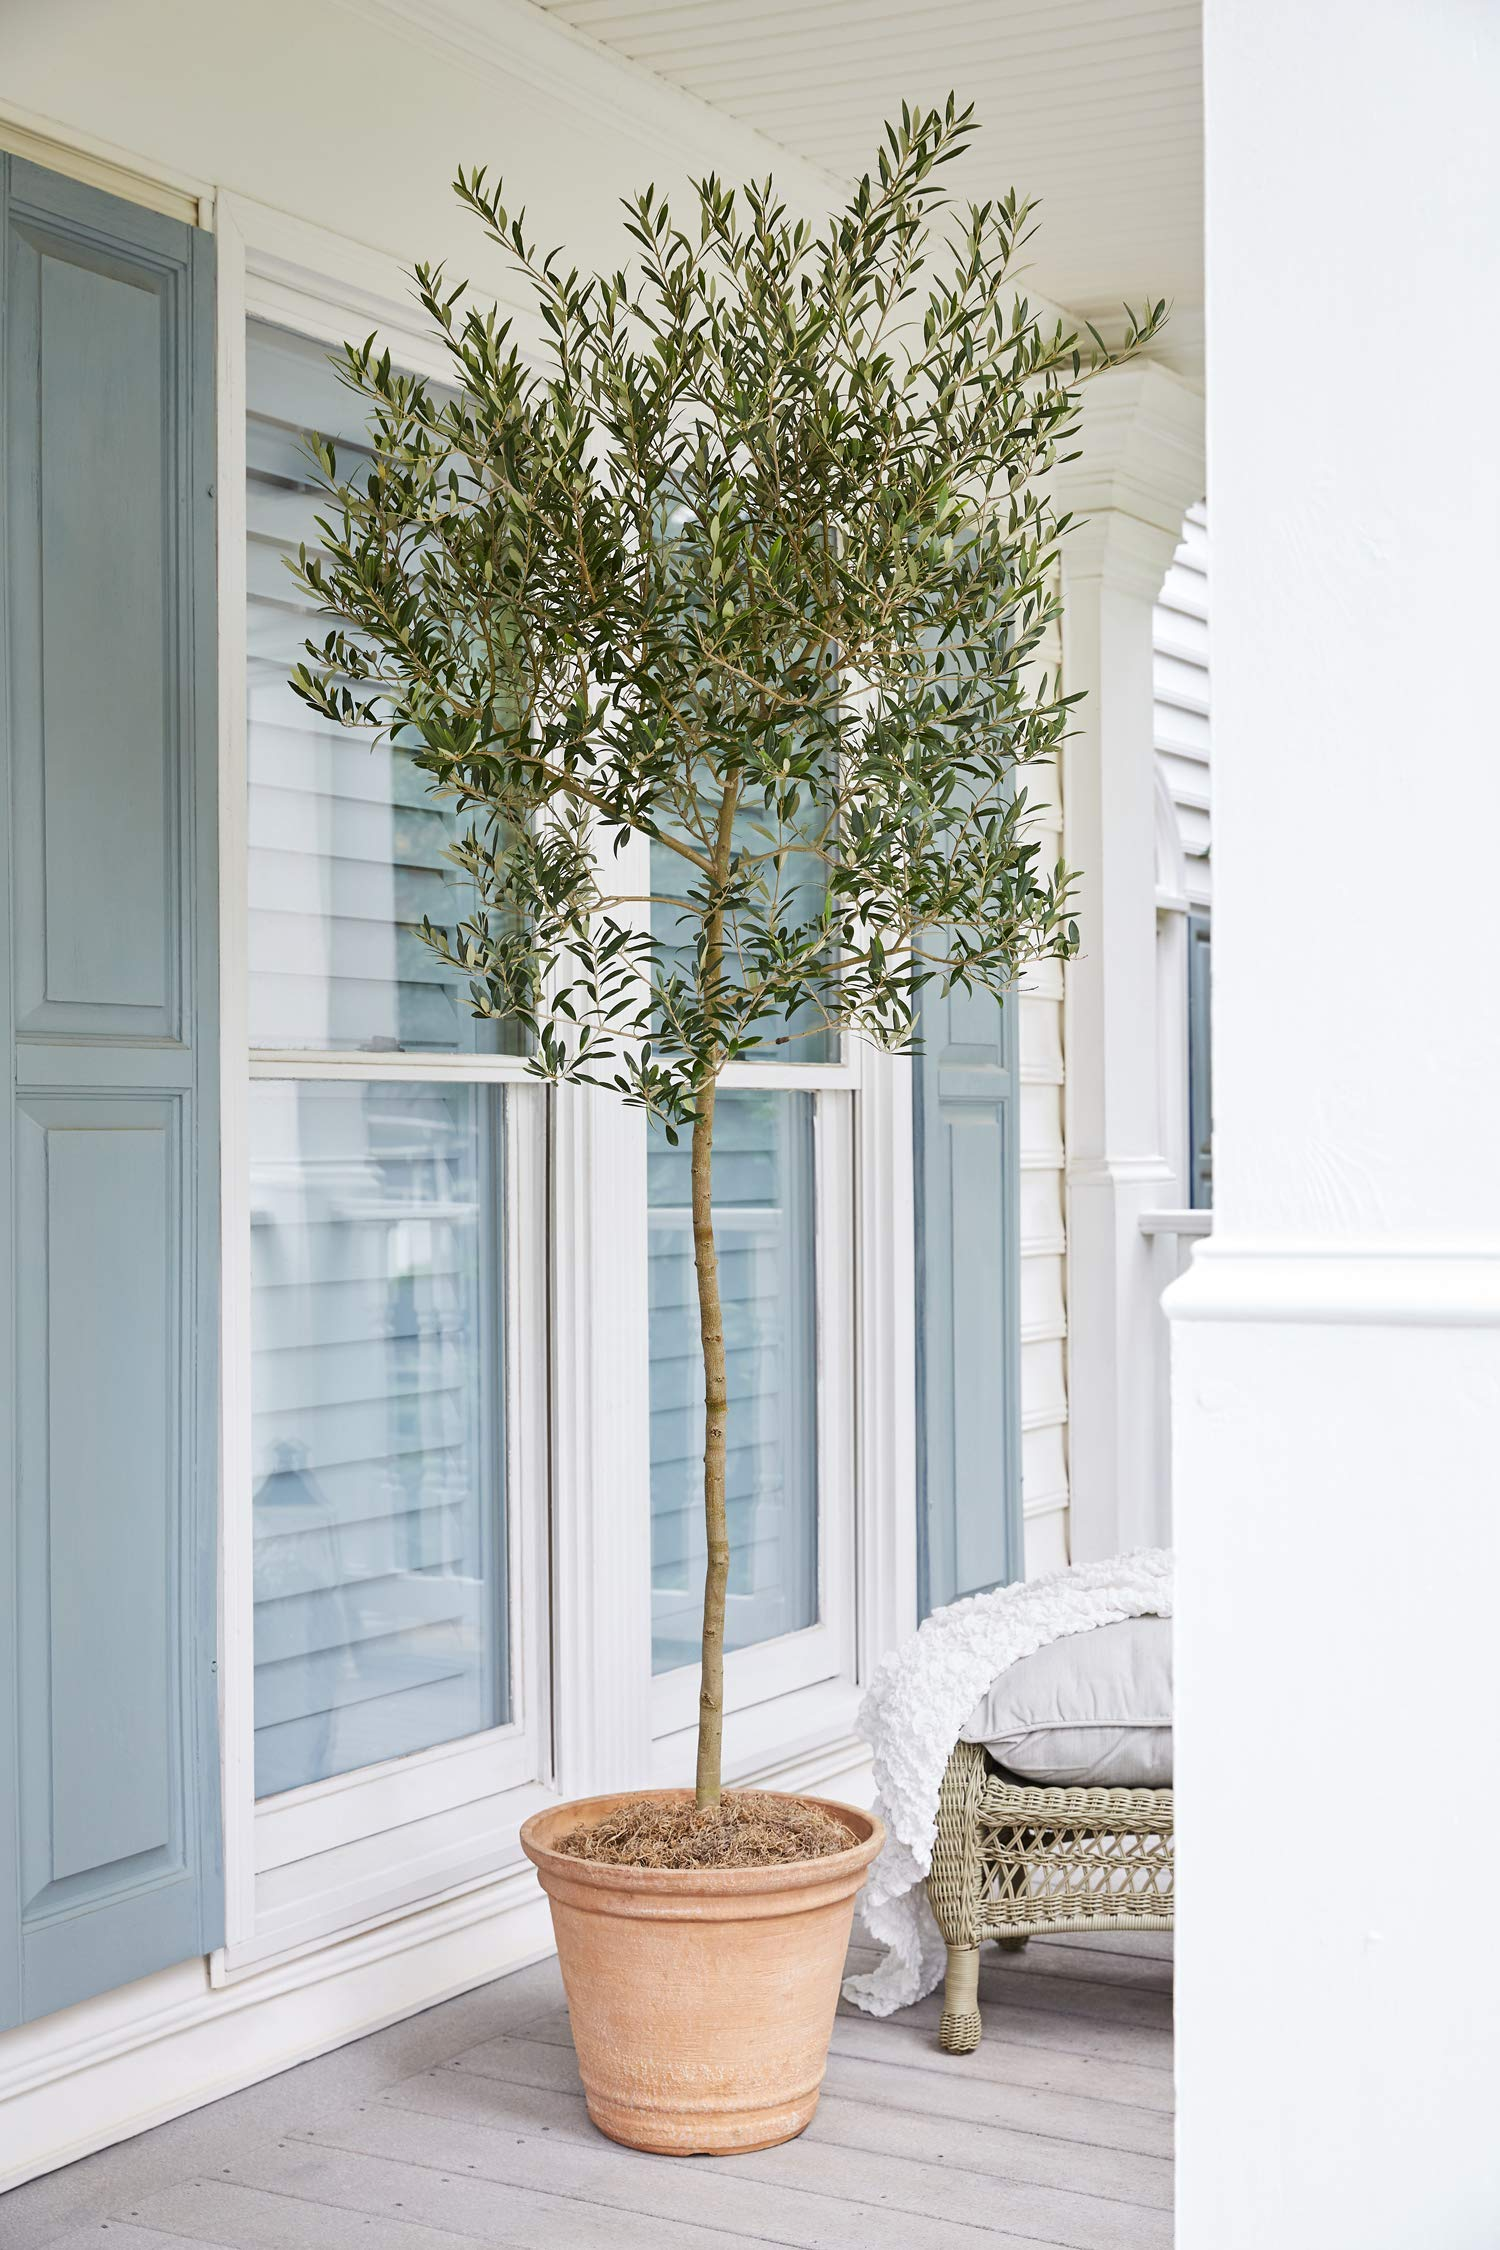 Arbequina Olive Tree 3-4 feet Tall - Get Olives 1st Year with Large Olive Trees - Indoor/Patio Live Olive Trees | No Shipping to AZ by Brighter Blooms (Image #3)